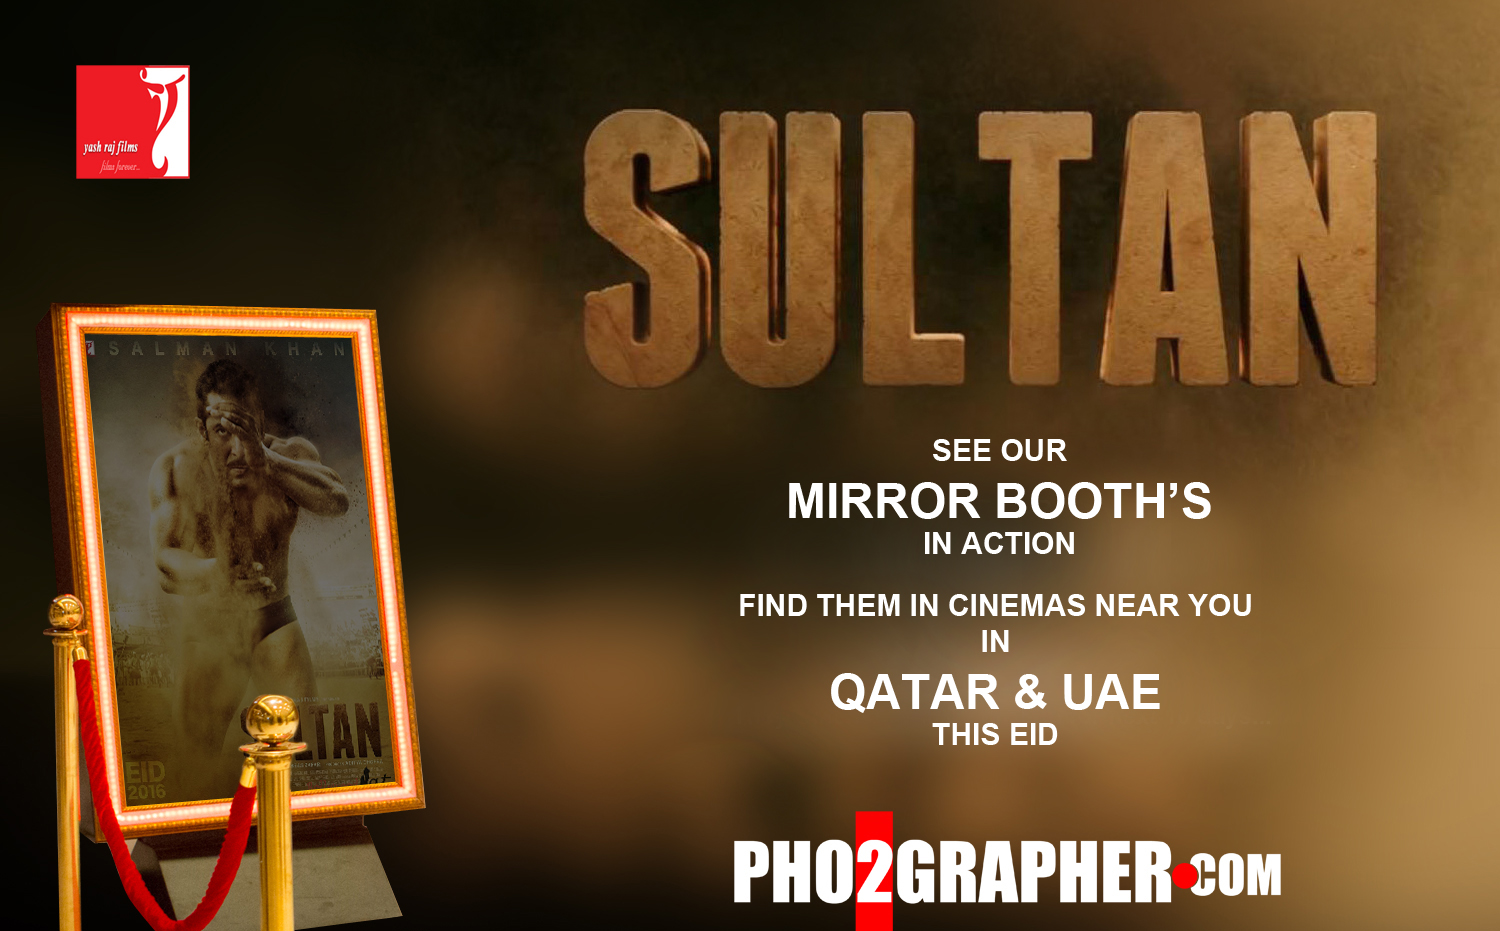 mirror booth dubai Sultan movie premiere